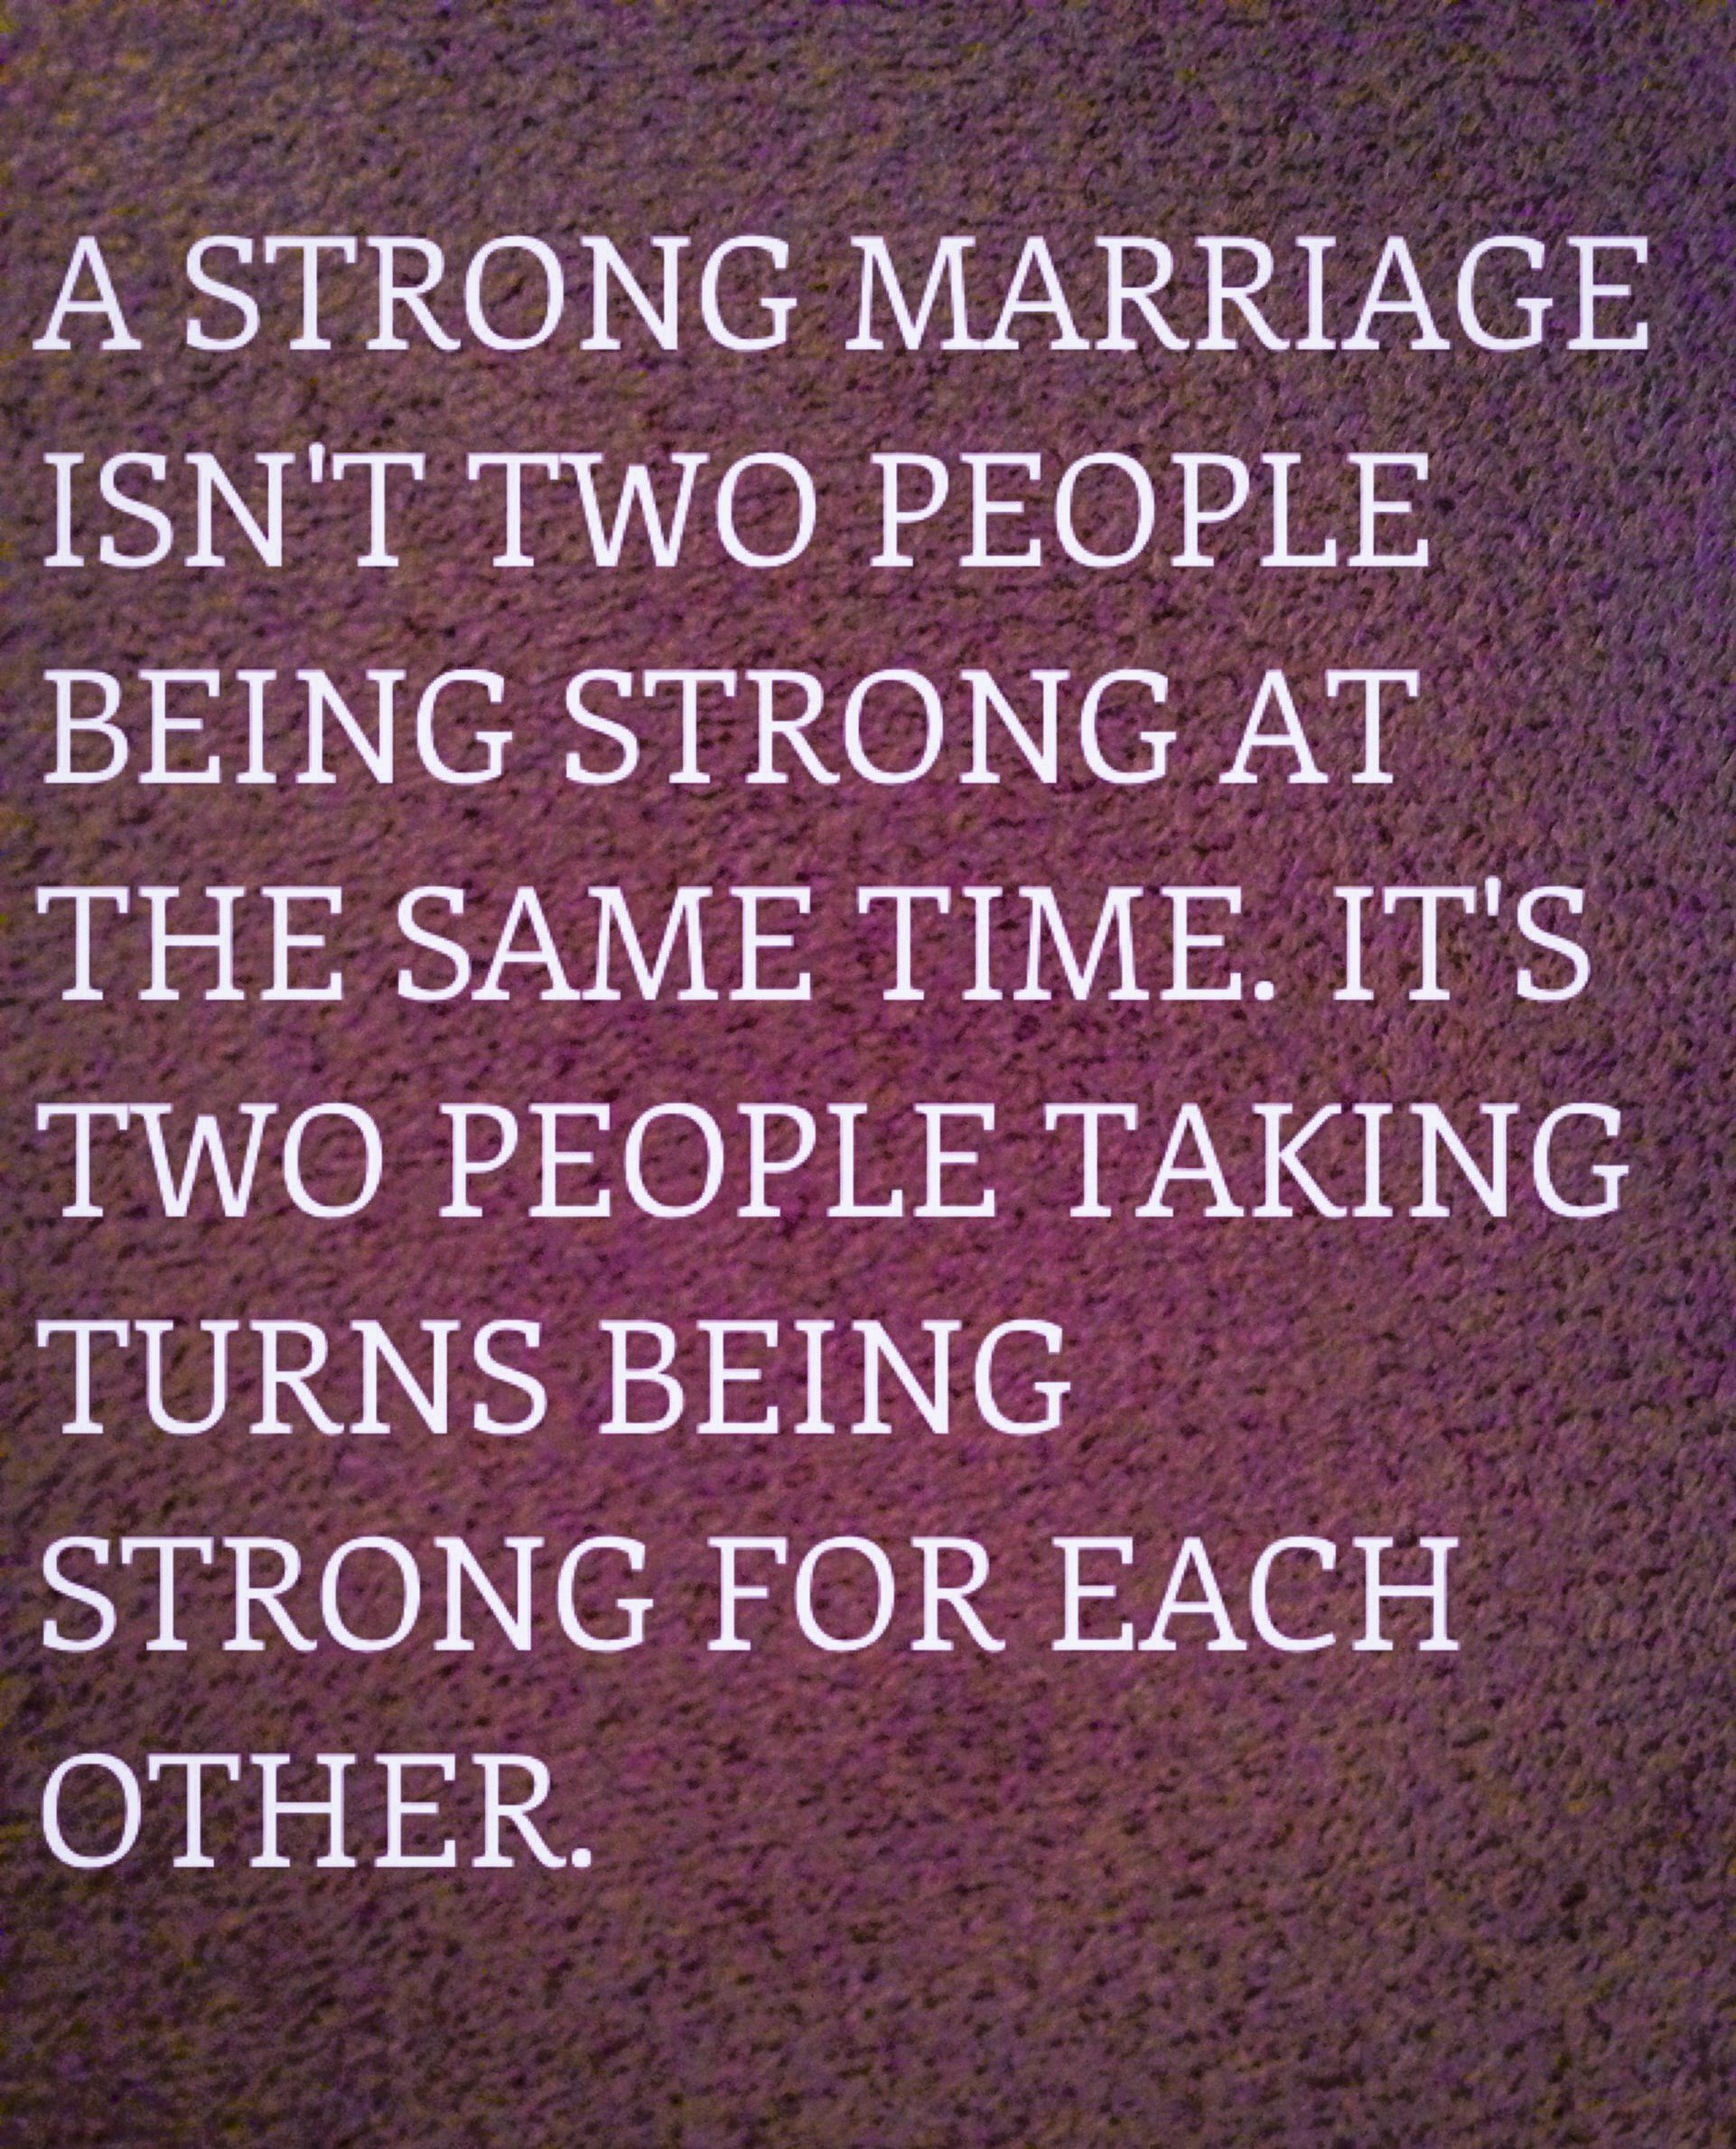 A strong marriage. Through the thickest & thinnest & always having